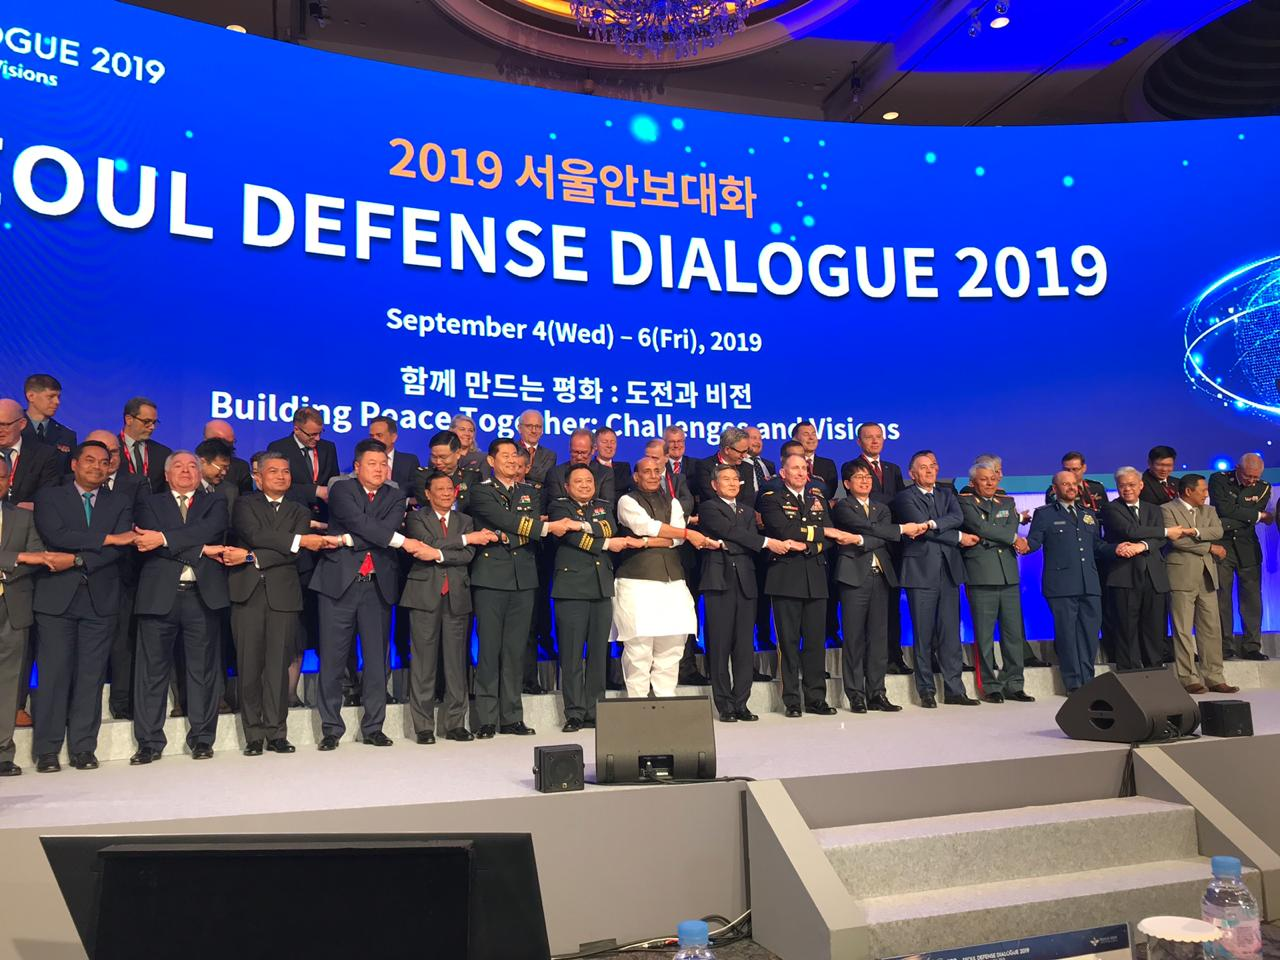 Raksha Mantri's Keynote Address at Seoul Defence Dialogue - 'Building Peace Together: Challenges & Vision'